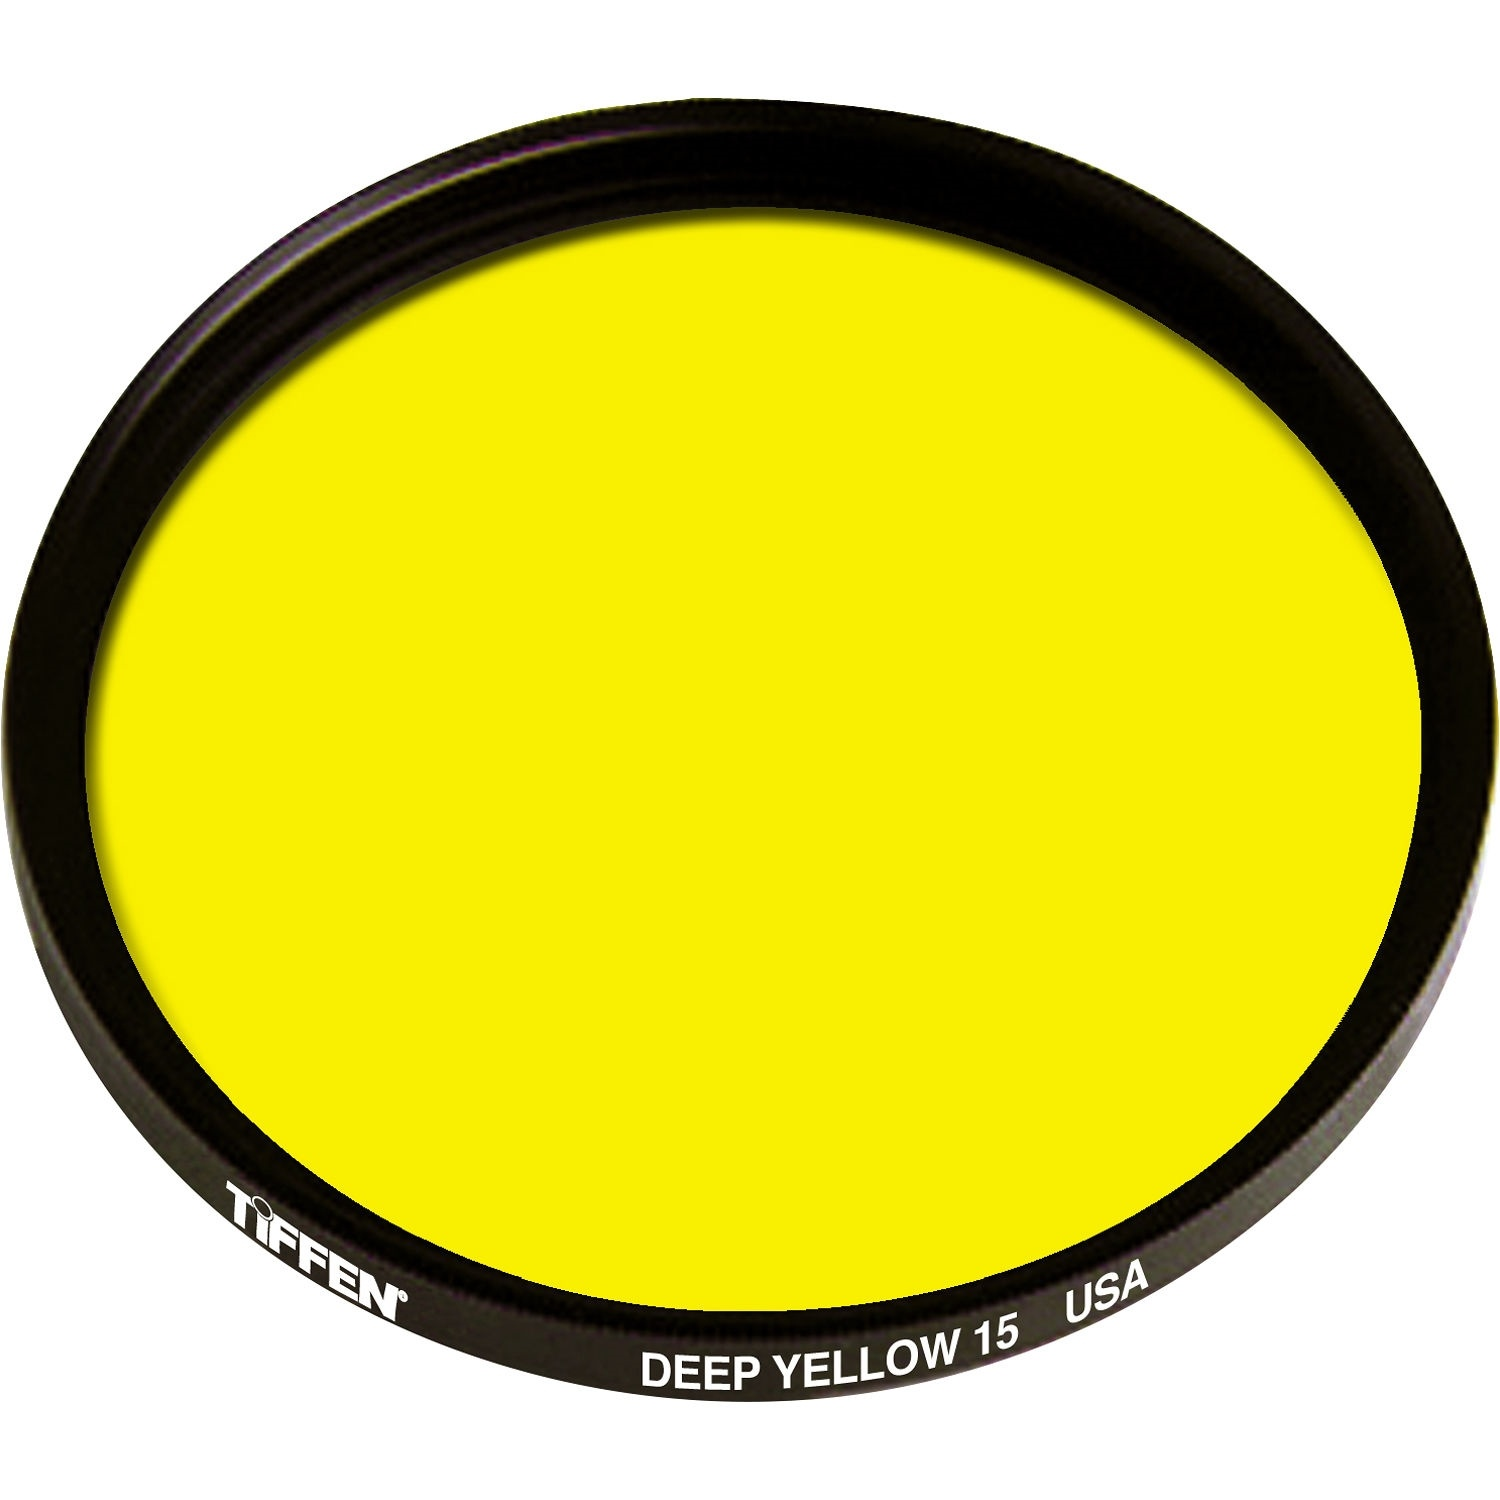 Tiffen 49mm Deep Yellow 15 Glass Filter for Black & White Film